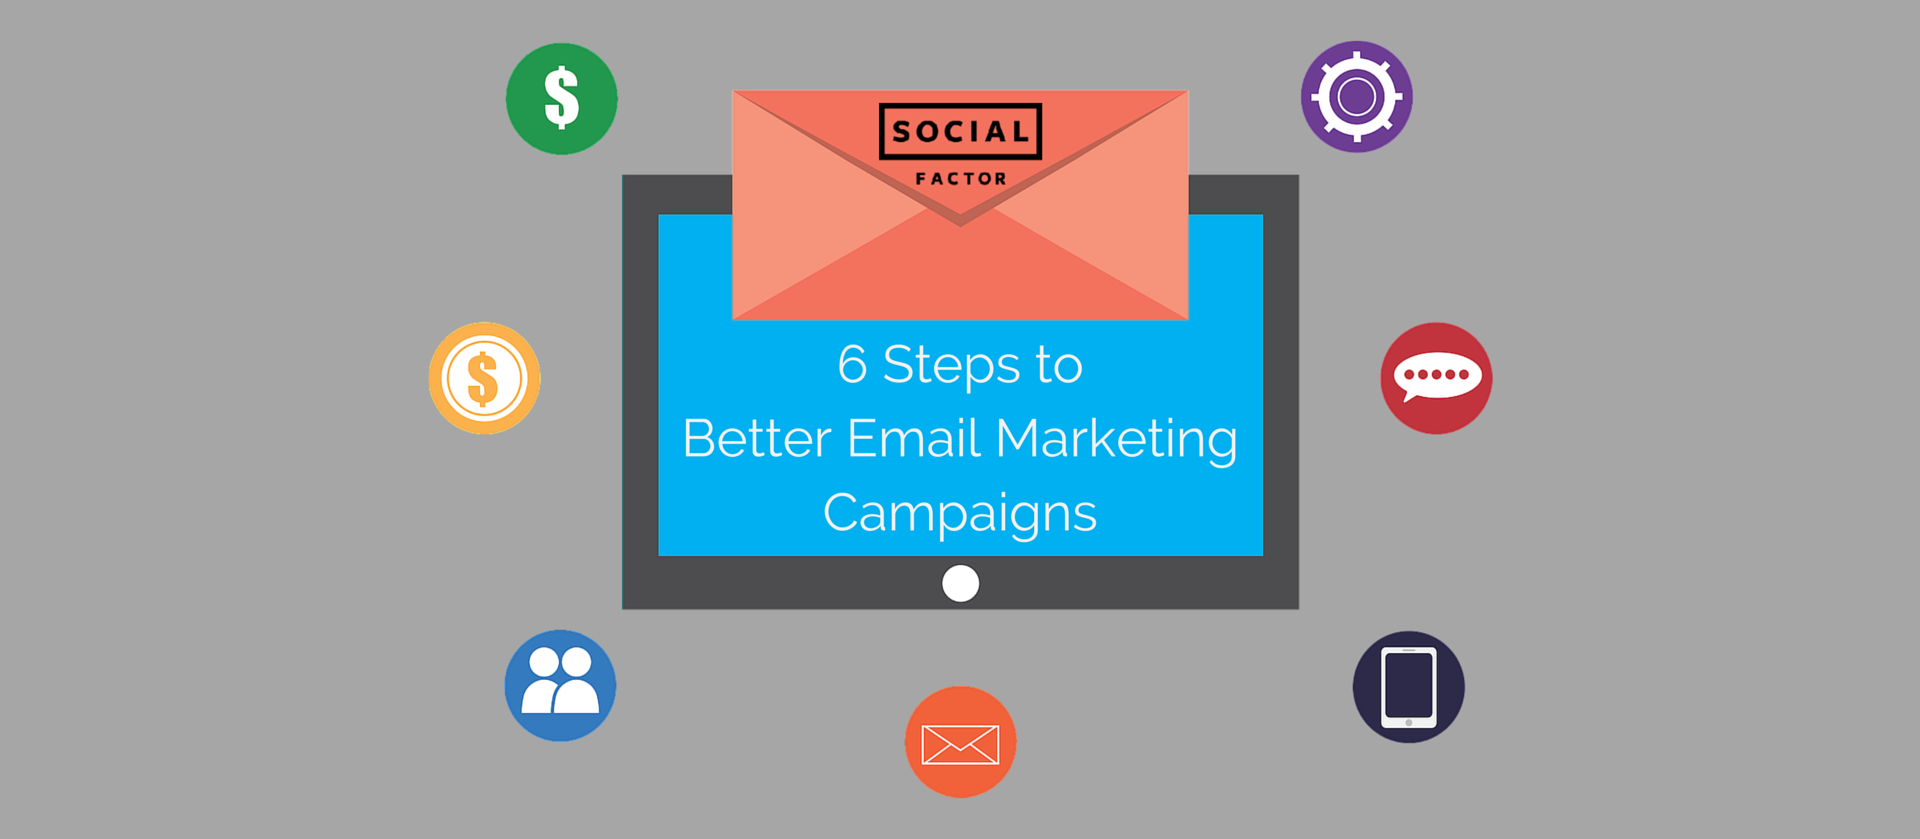 Six Tips For Better Email Marketing Campaigns | Social Factor